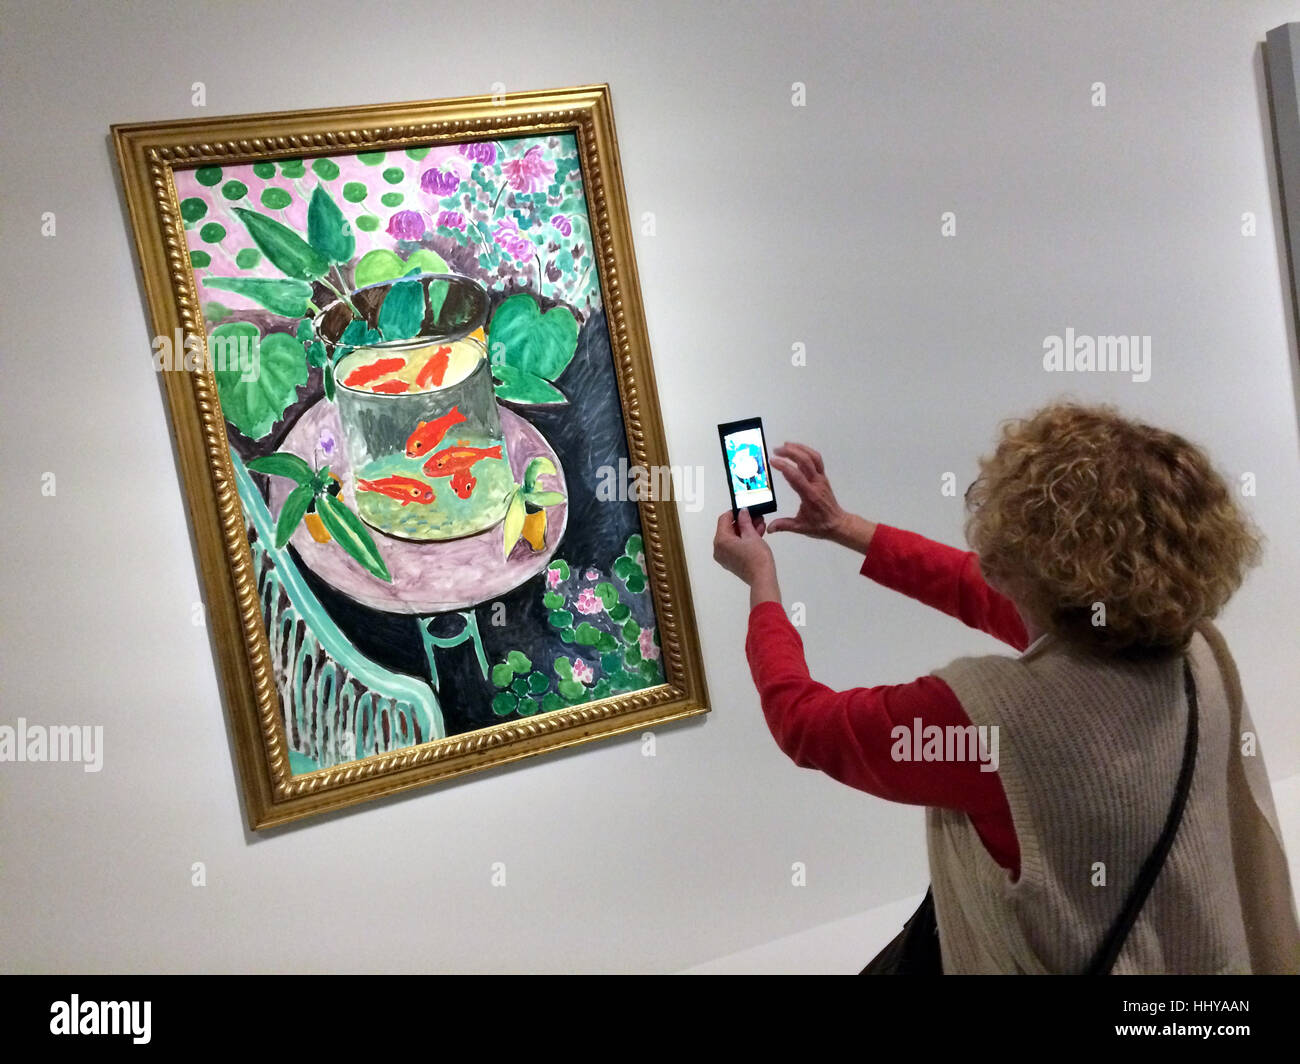 stock photo visitor uses a smartphone to photograph the painting the goldfish by french painter henri matisse displayed at the exhibition icons of